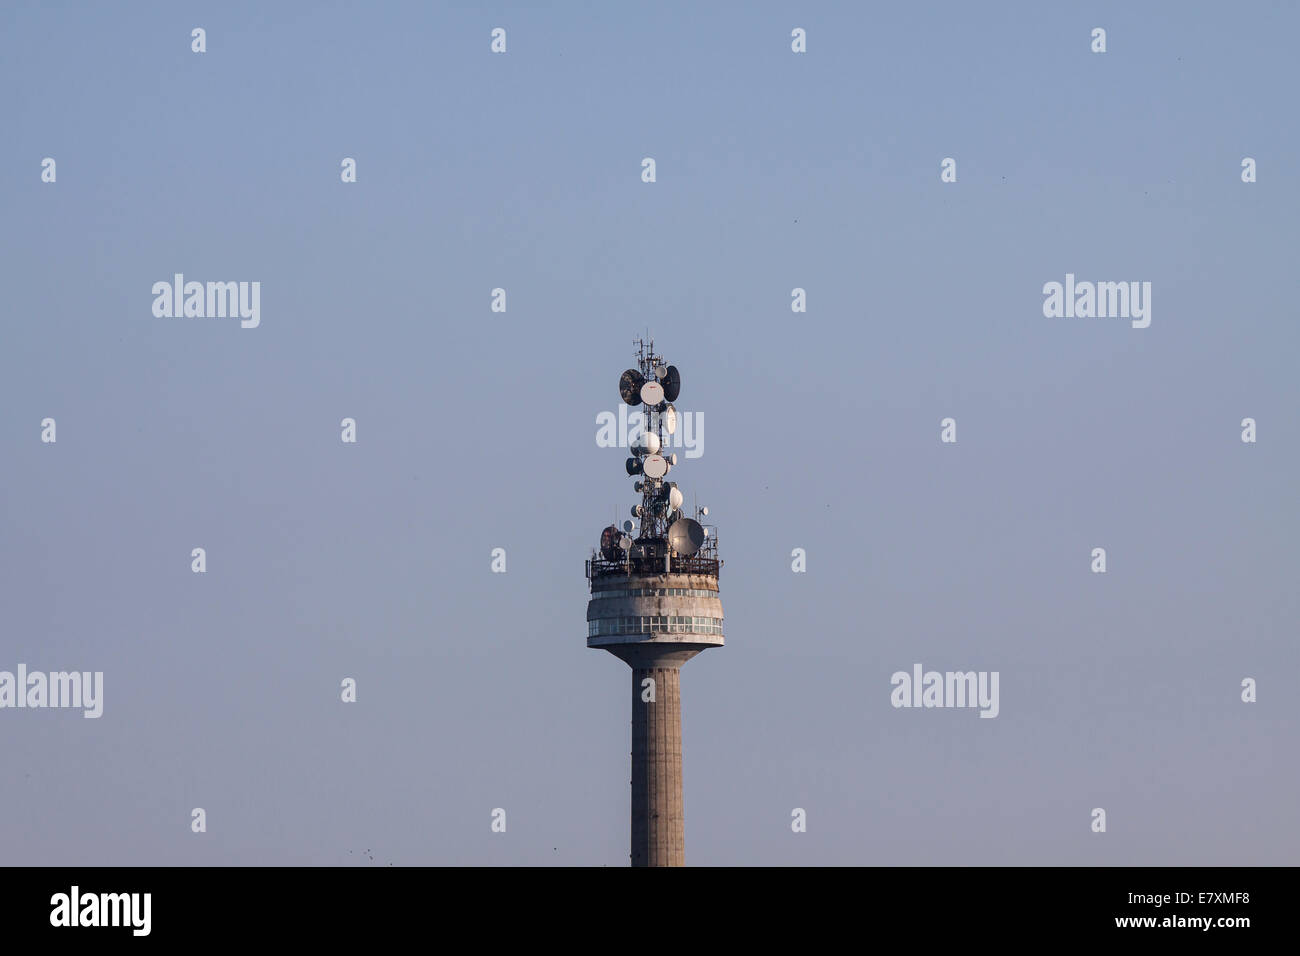 Television antennae tower with satellite dishes - Stock Image